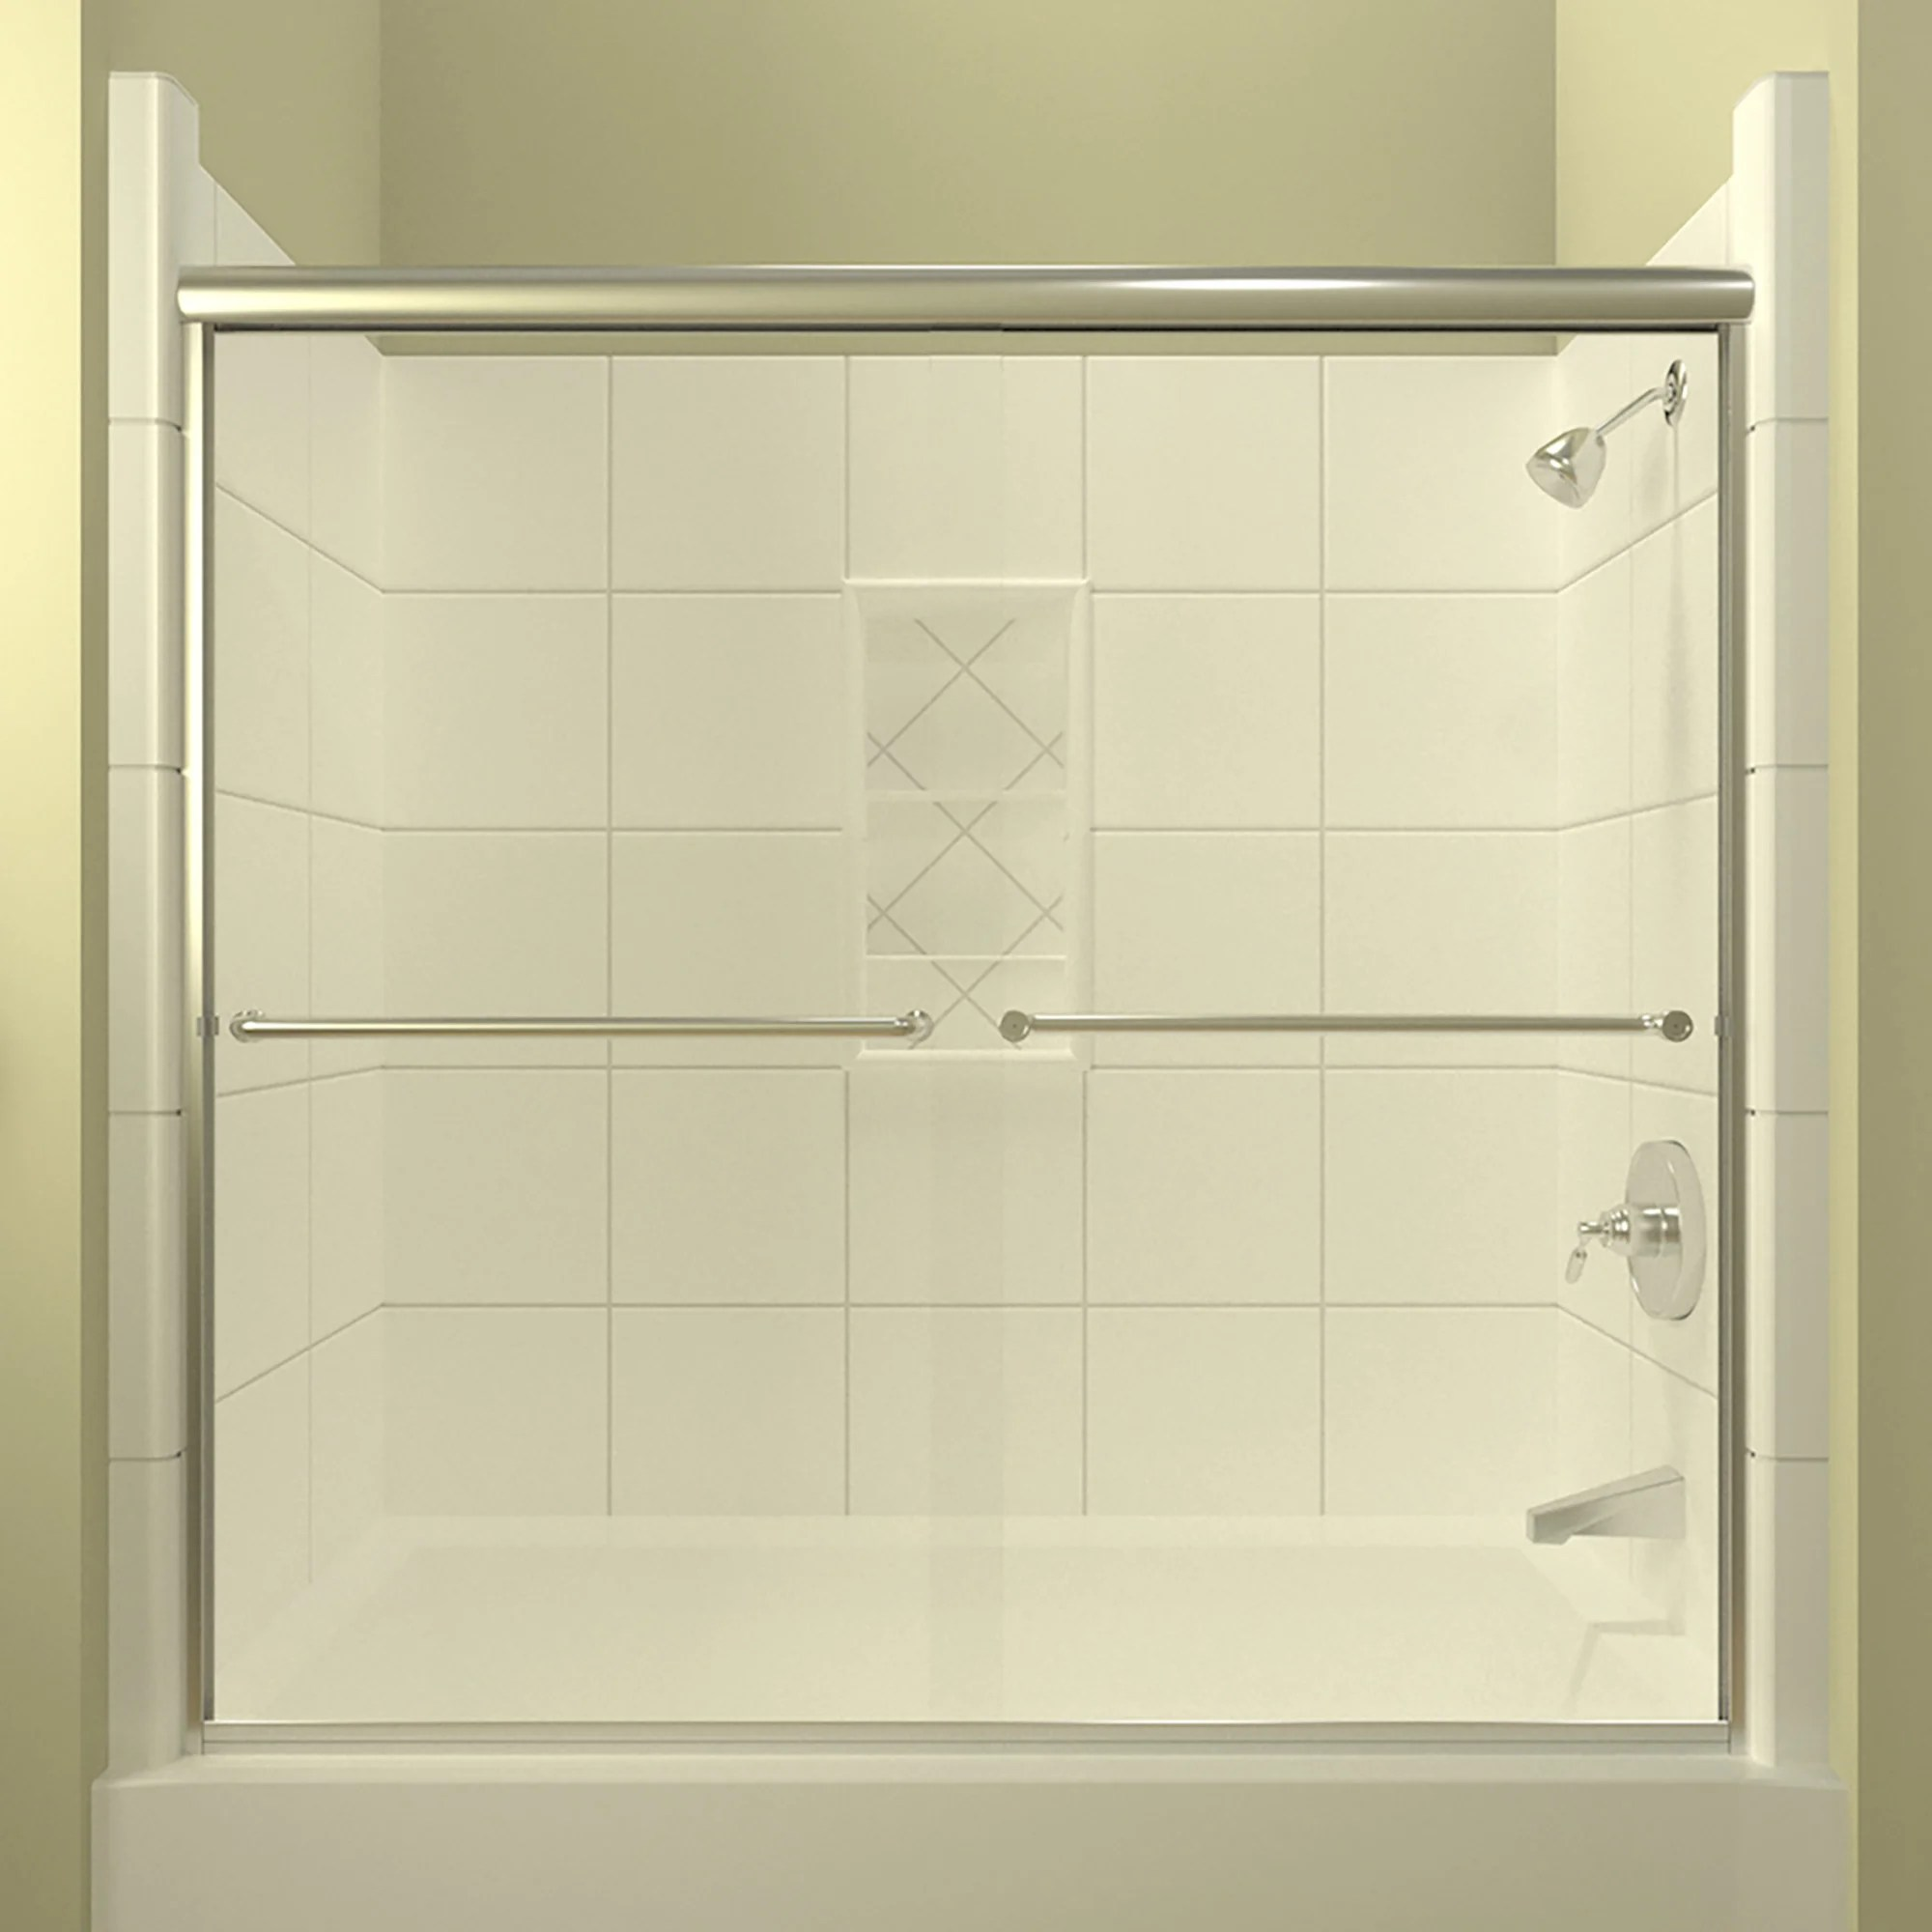 Details About Ete 72 X 57 38 Bypass Semi Frameless Tub Door Polished Chrome 0 25